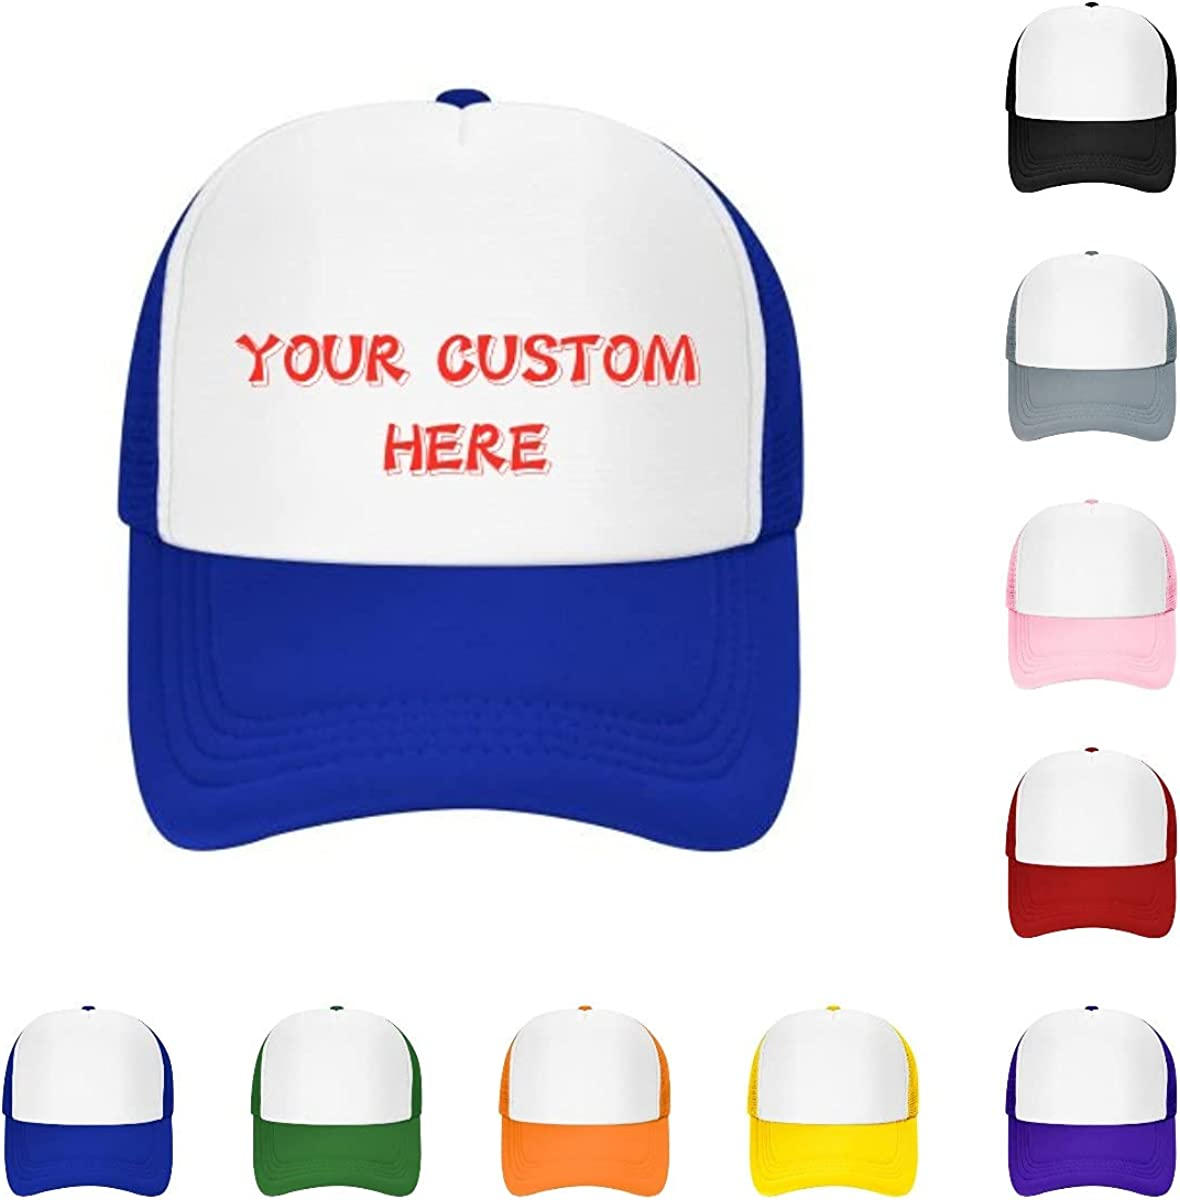 Custom Hats Custom Baseball Cap with Your Text,Personalized Adjustable Trucker Caps Casual Sun Peak Hat for Gifts